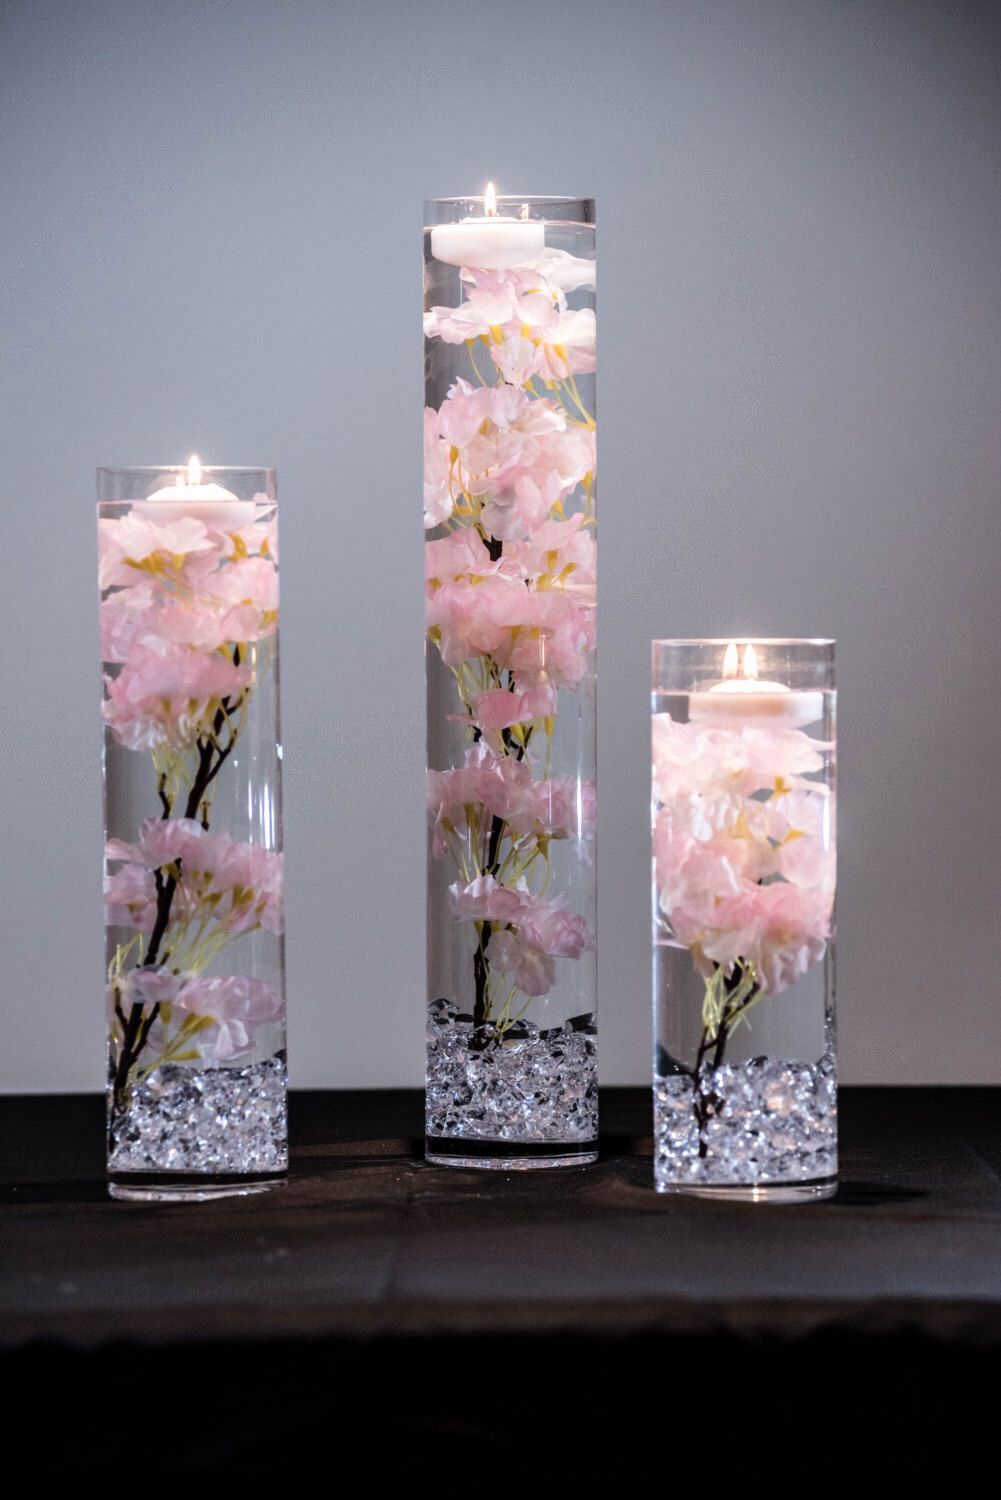 30 Trendy Candle Vase Wedding Centerpieces 2021 free download candle vase wedding centerpieces of floating candles for wedding fresh vases floating candle vase set pertaining to floating candles for wedding inspirational submersible pink or white cherr